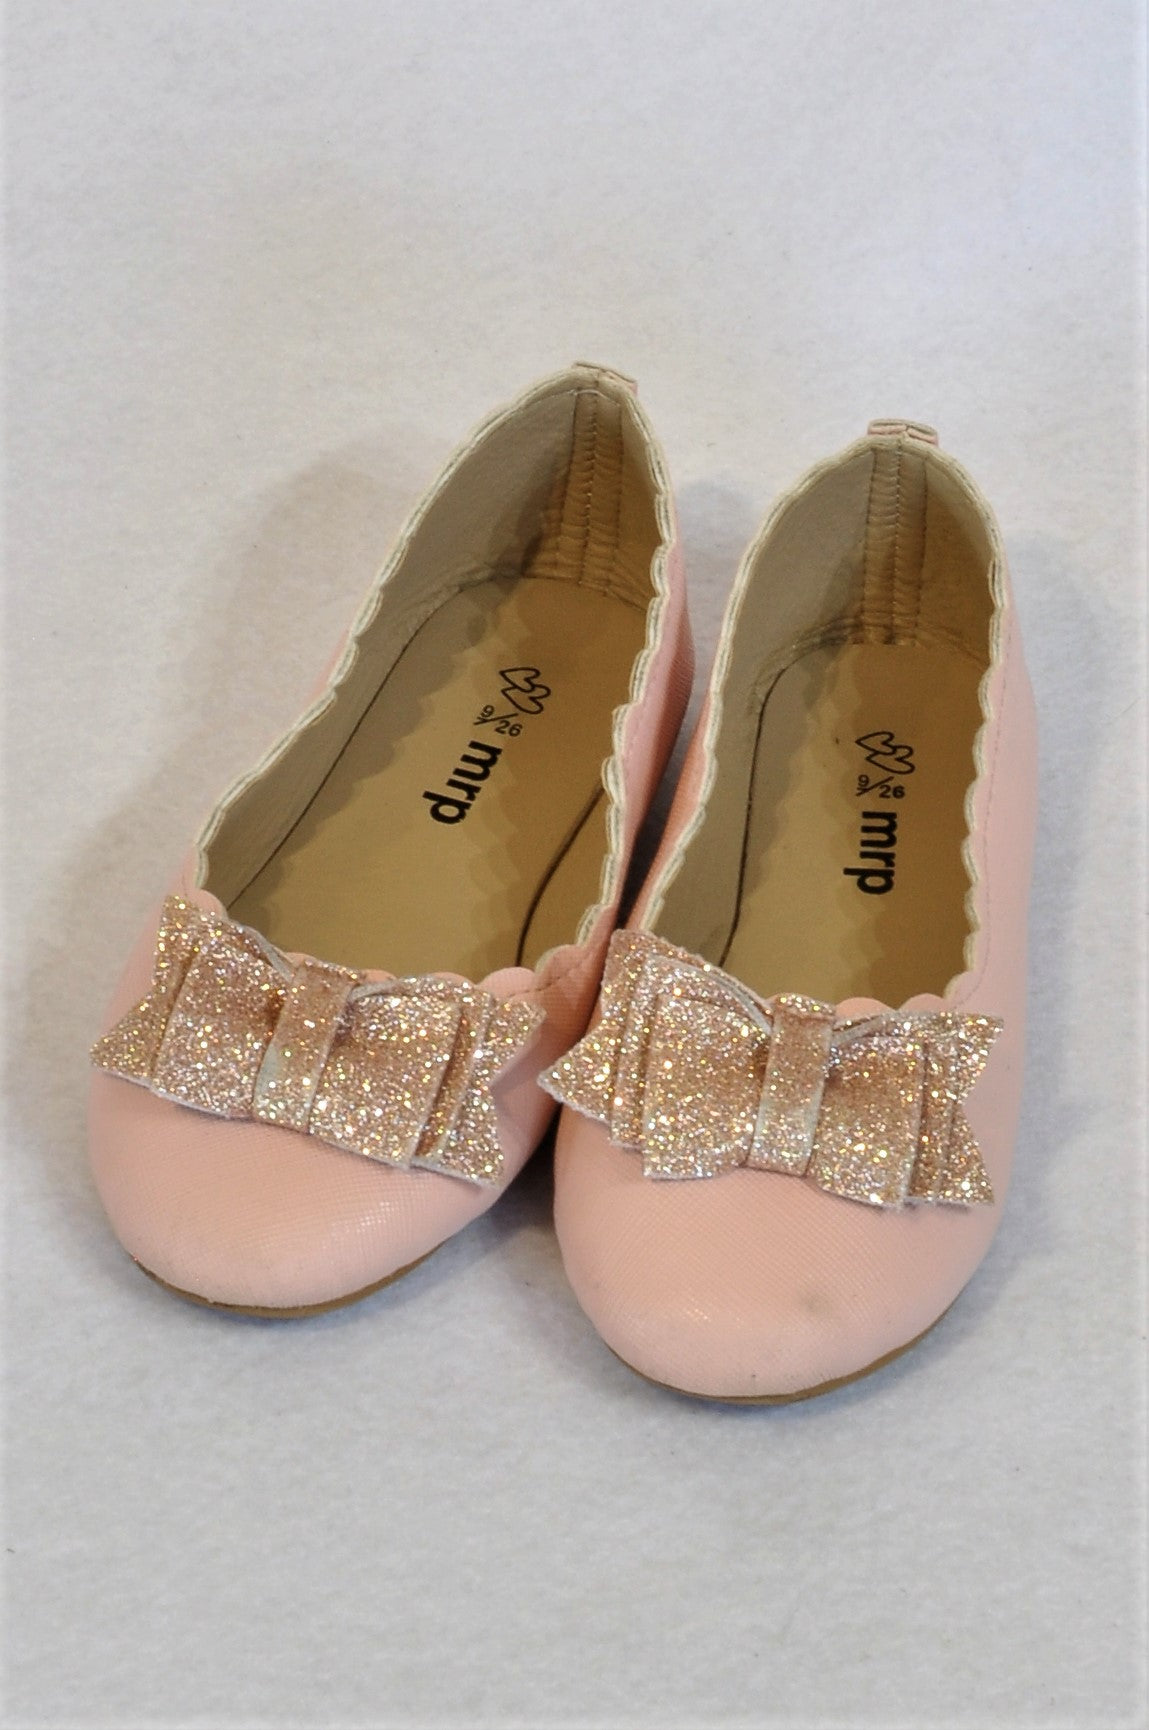 Mr. Price Size 9 Pink Pump Shoes Girls